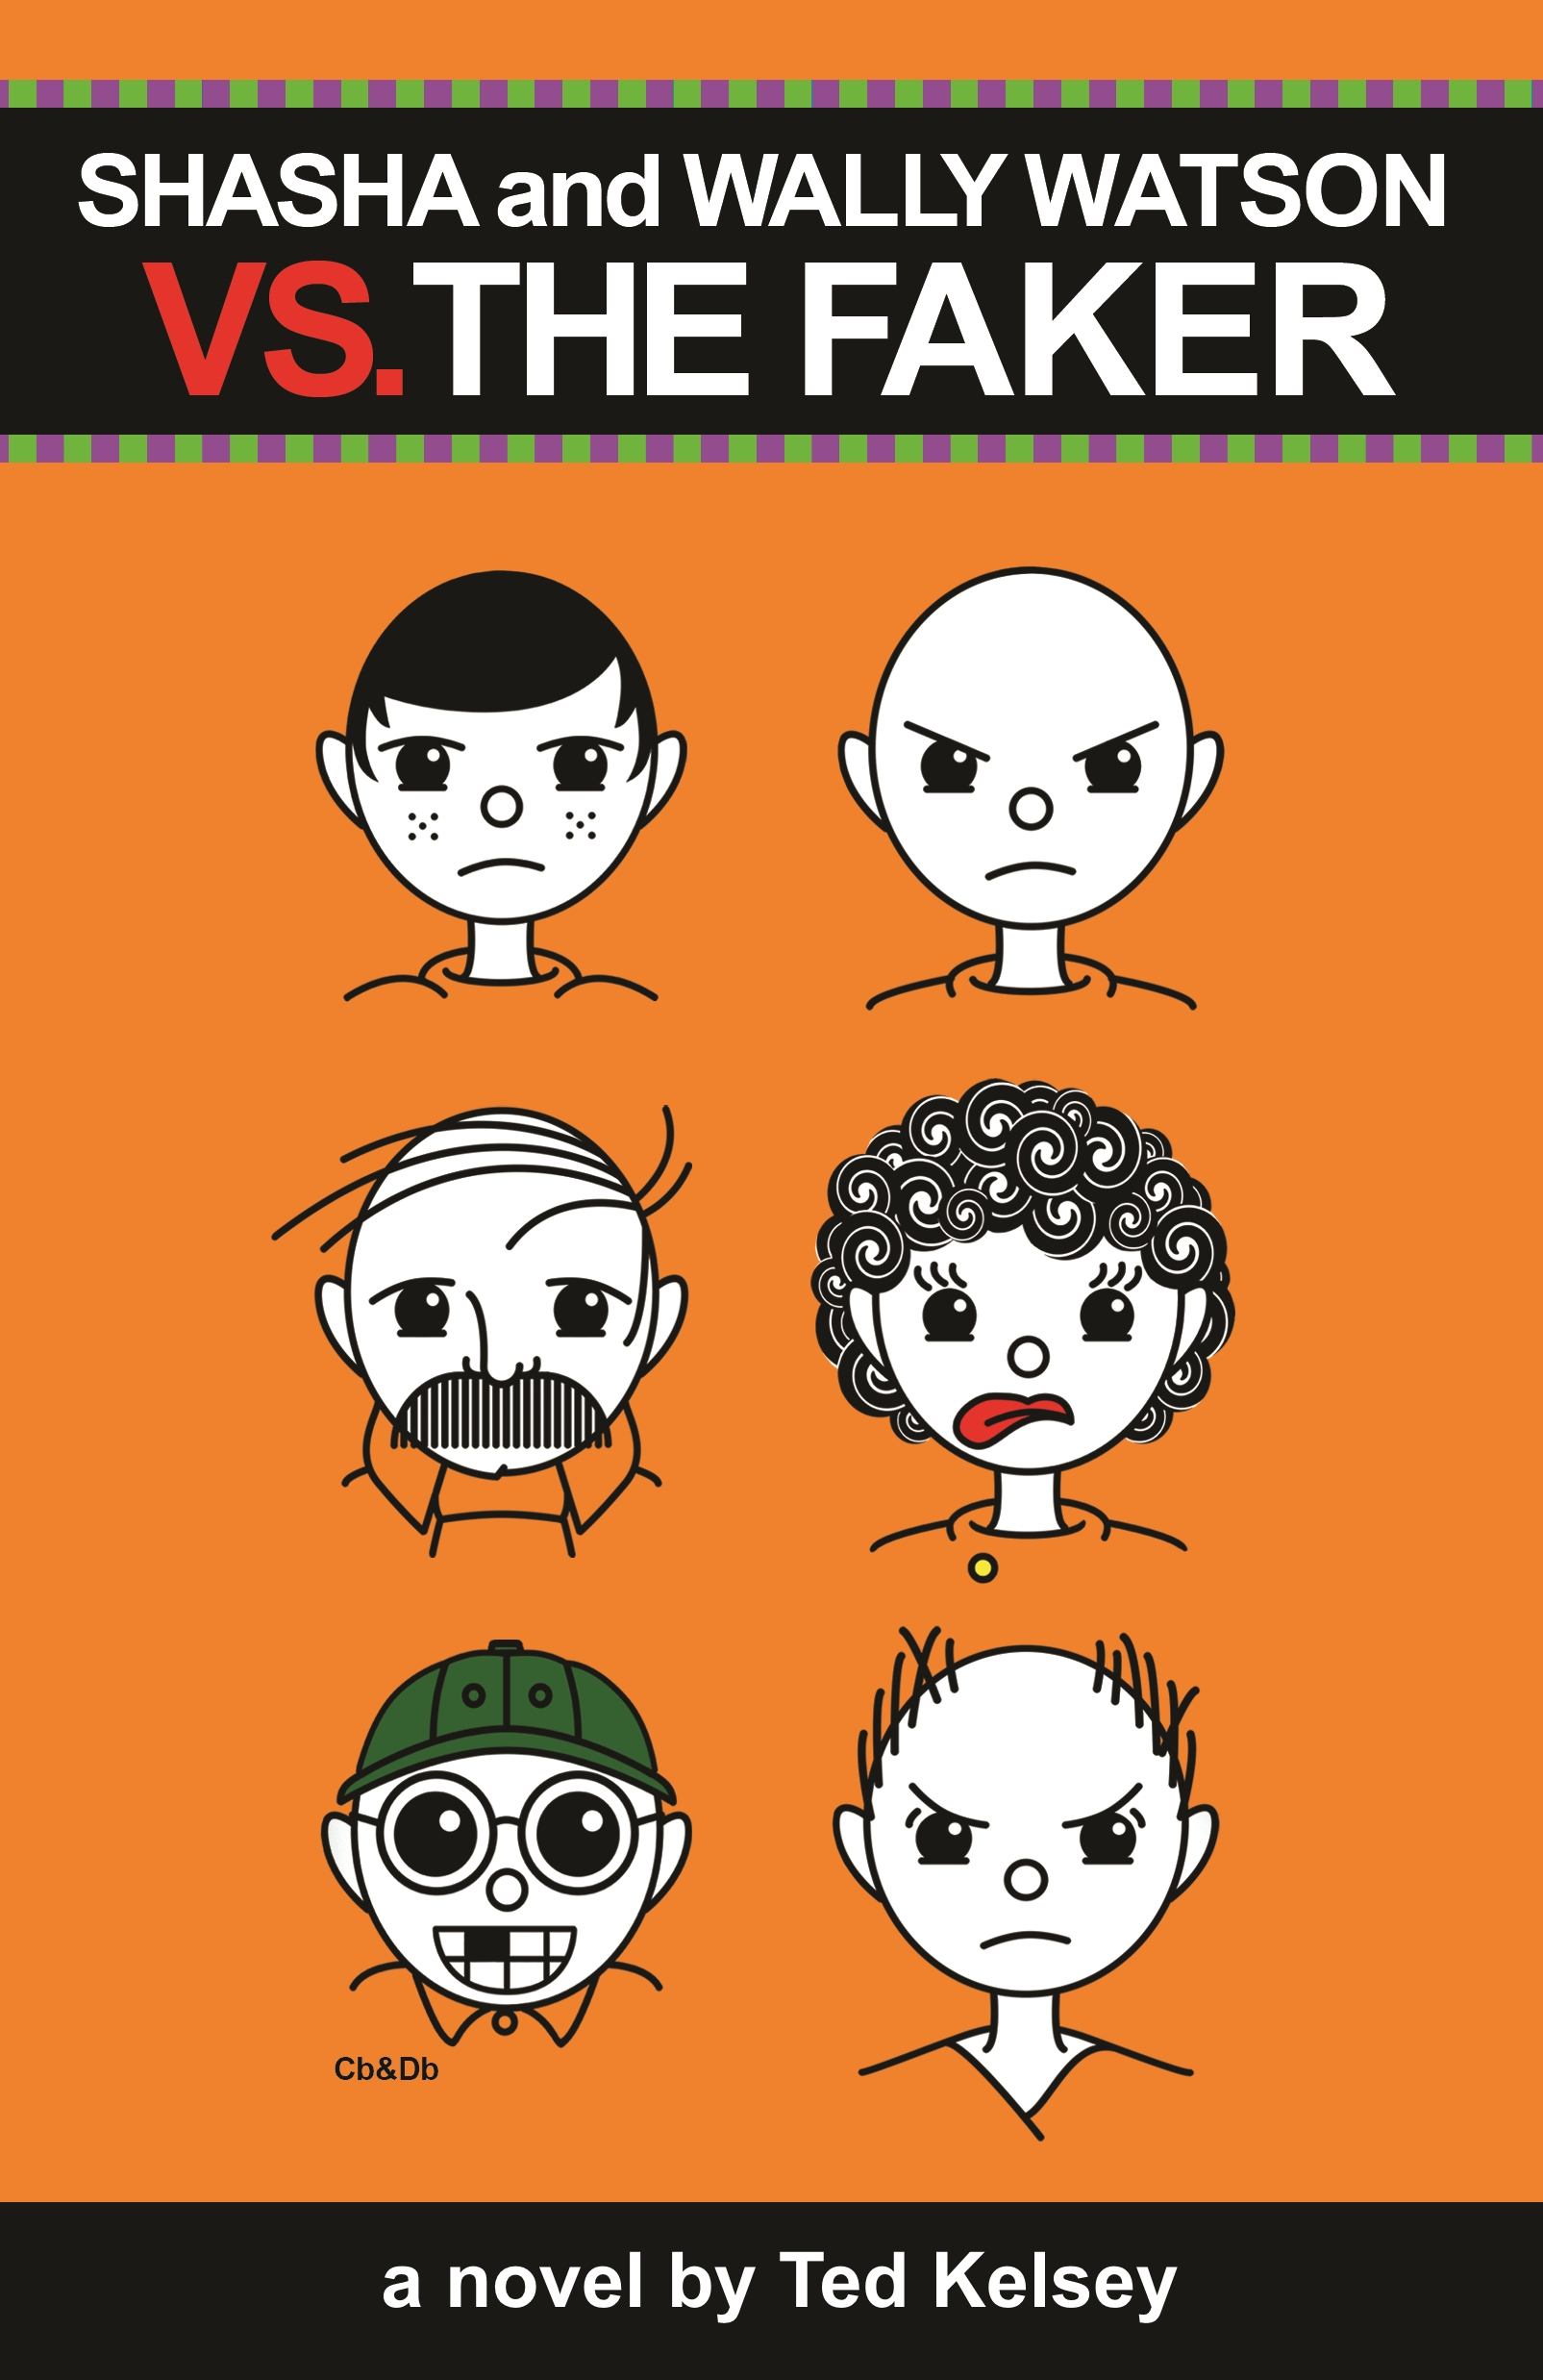 Fakers_Cover2 (2).jpg